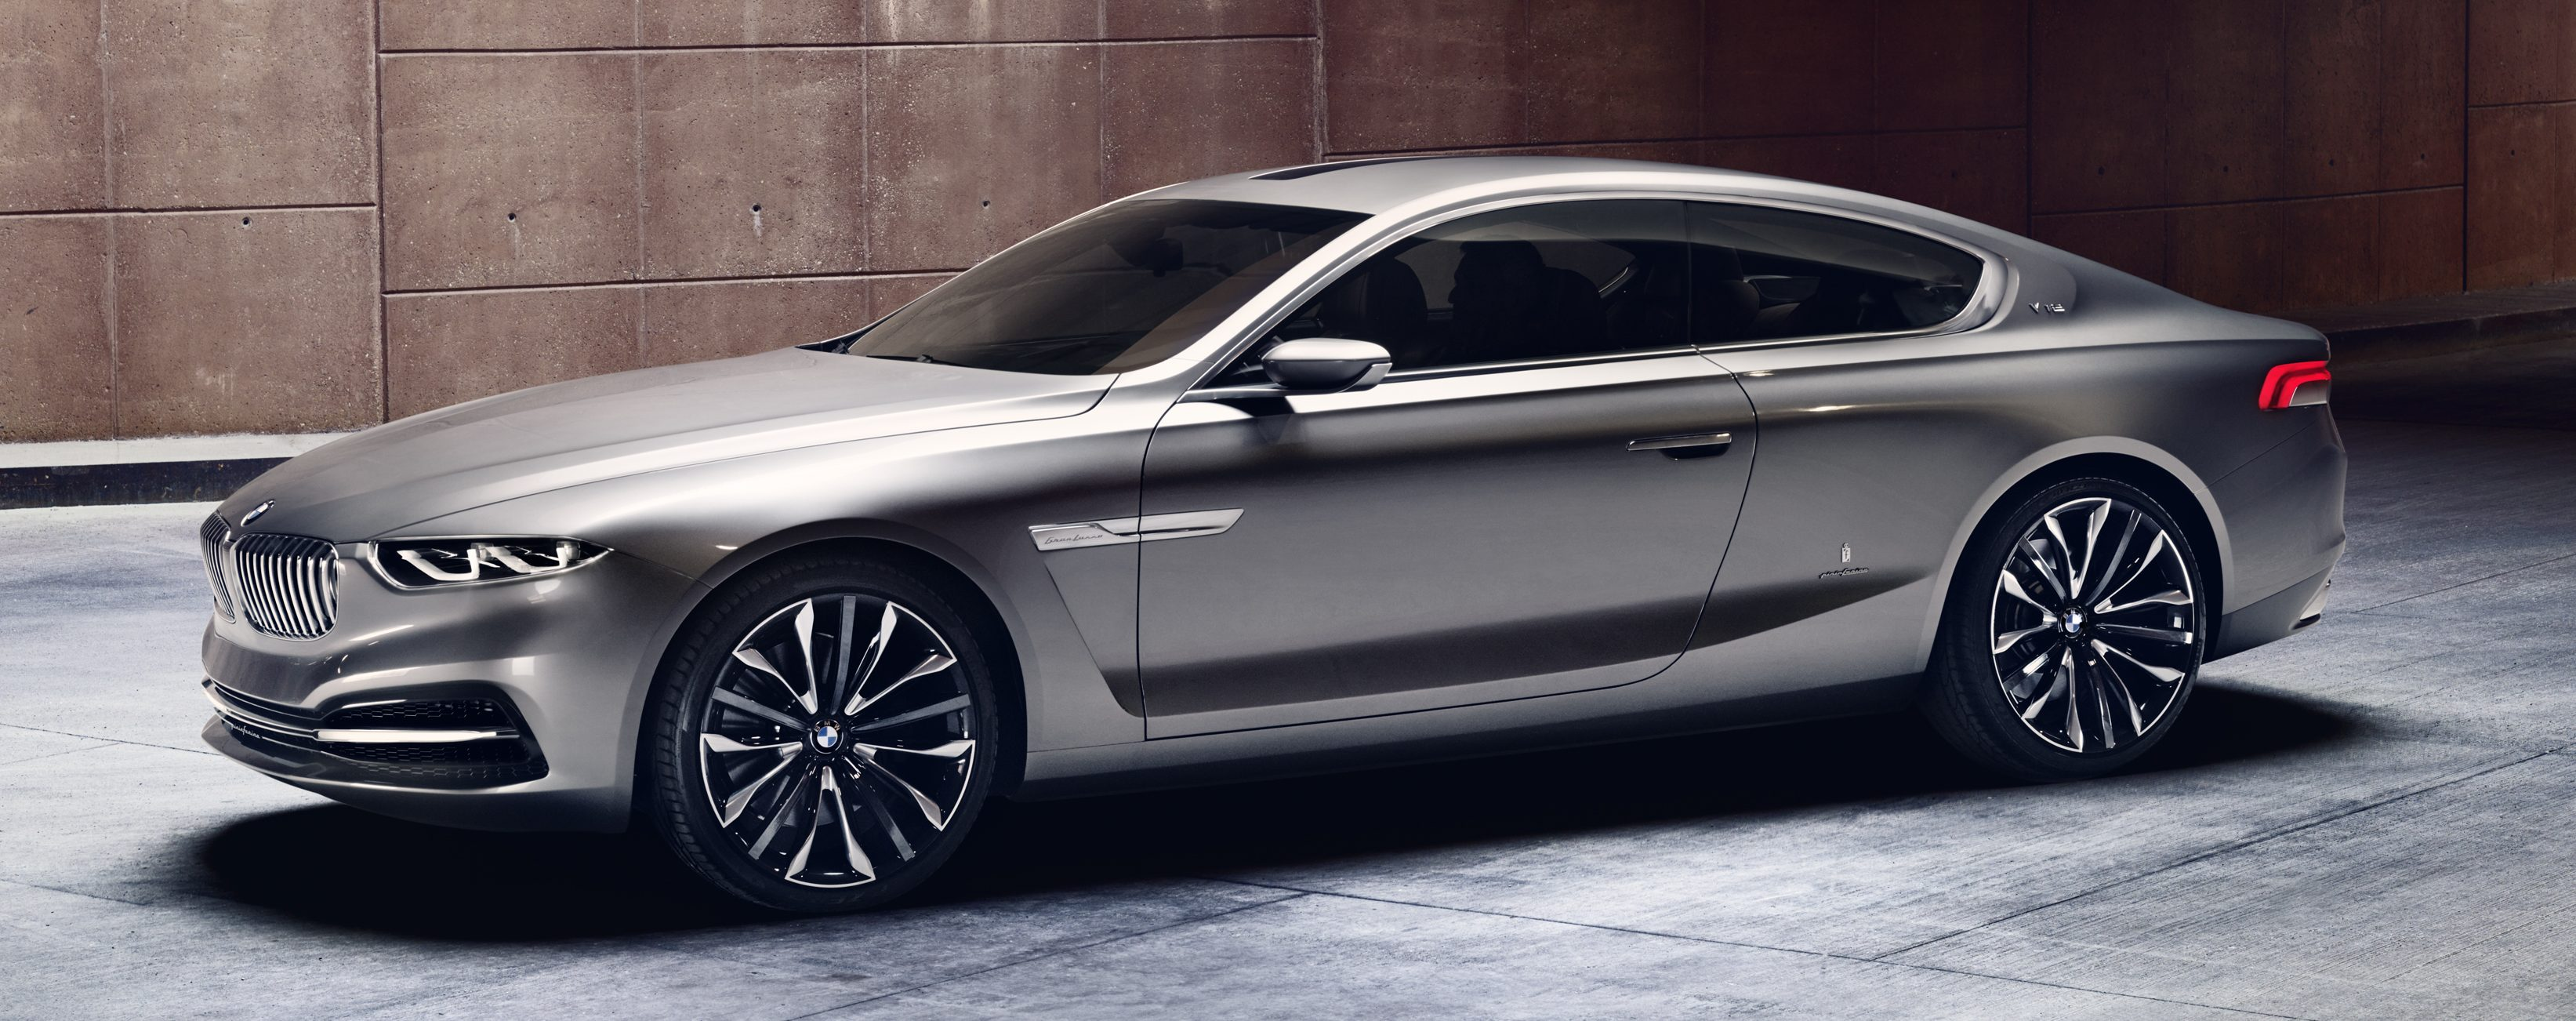 Bmw S 8 Series Grand Tourer Set To Make A Comeback Image